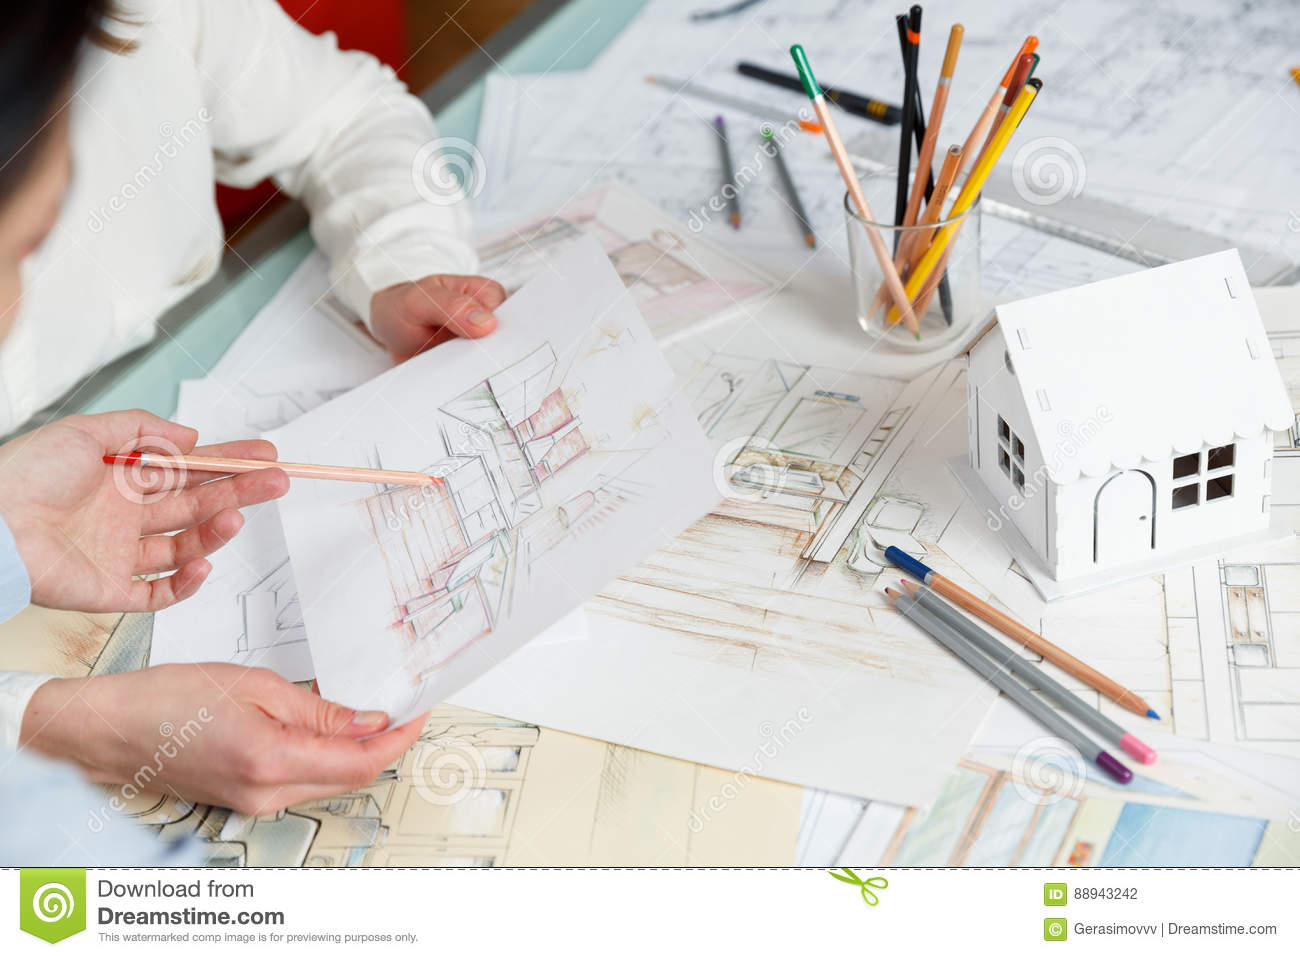 Interior Designers Working On Color Hand Drawings Of A Kitchen Interior At  Work Place. Photo Of Young Designers Work Concept